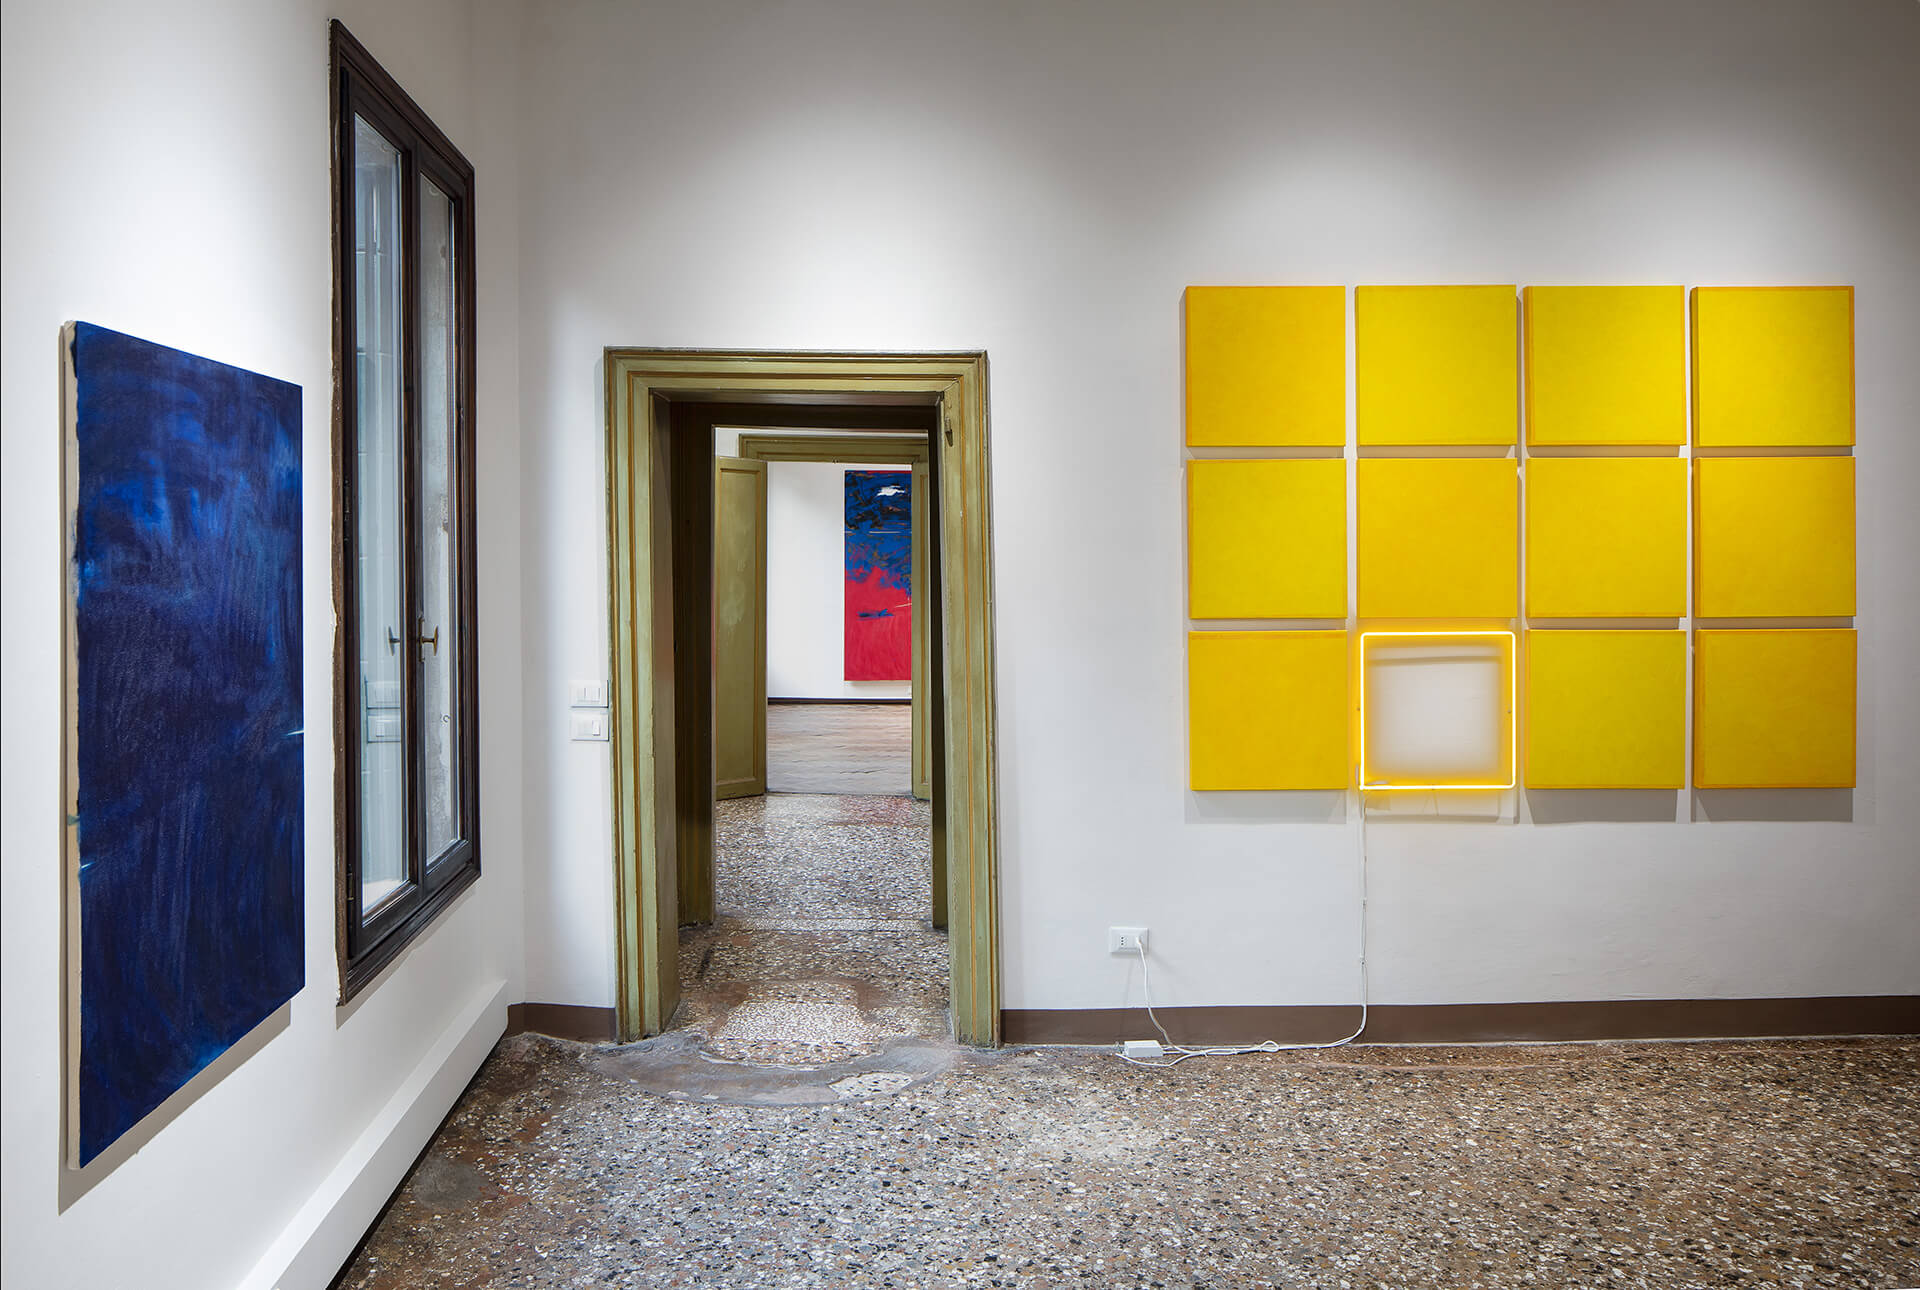 Installation view of an exhibition of three contemporary Italian artists | Venice reopens post COVID-19 lockdown | STIRworld